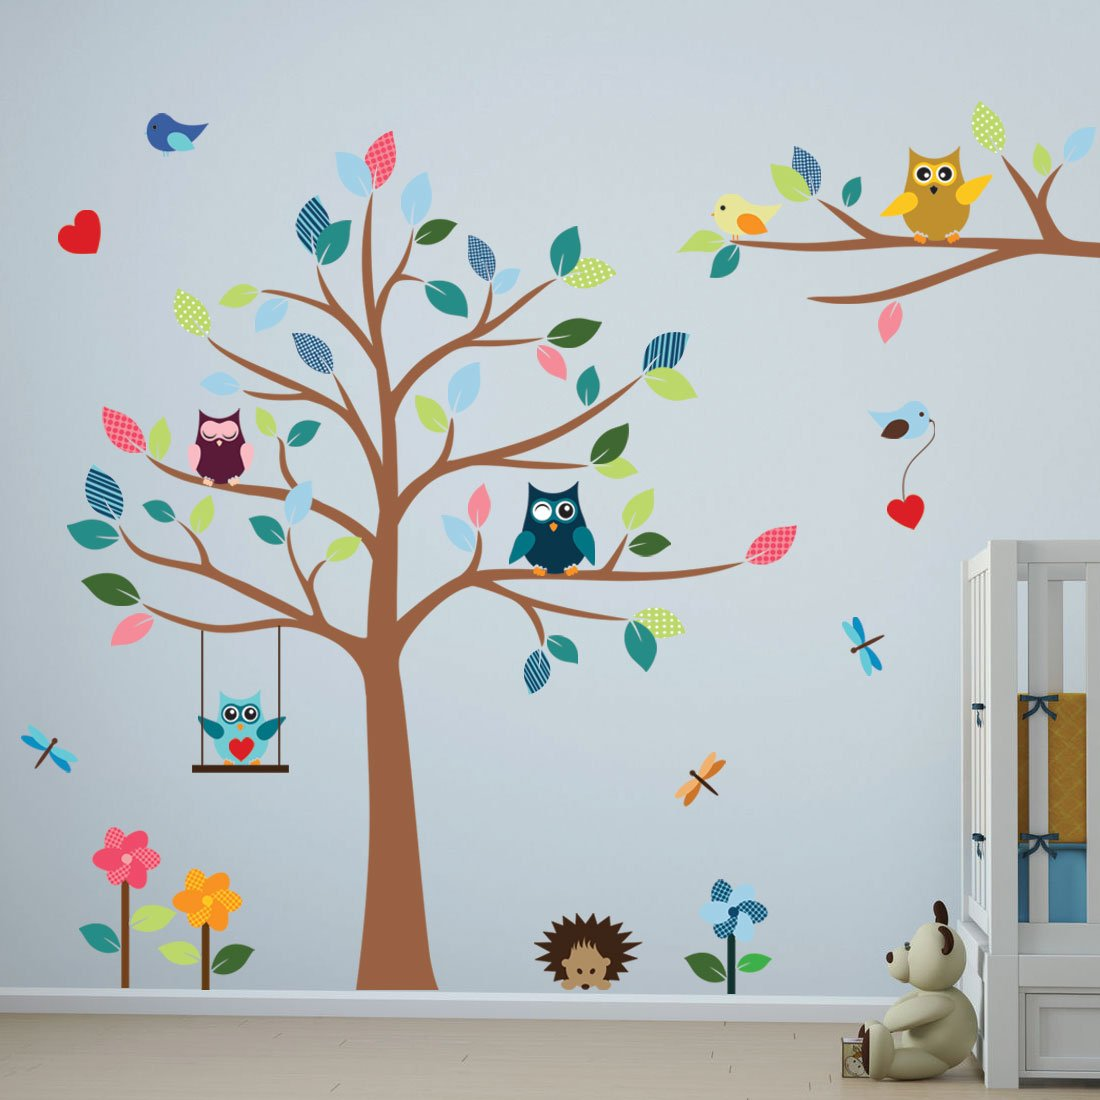 Timber Artbox Cheerful Nursery Wall Decals with Owls & Tree - Best Décor for Kids Room, Nursery & Playroom by Timber Artbox